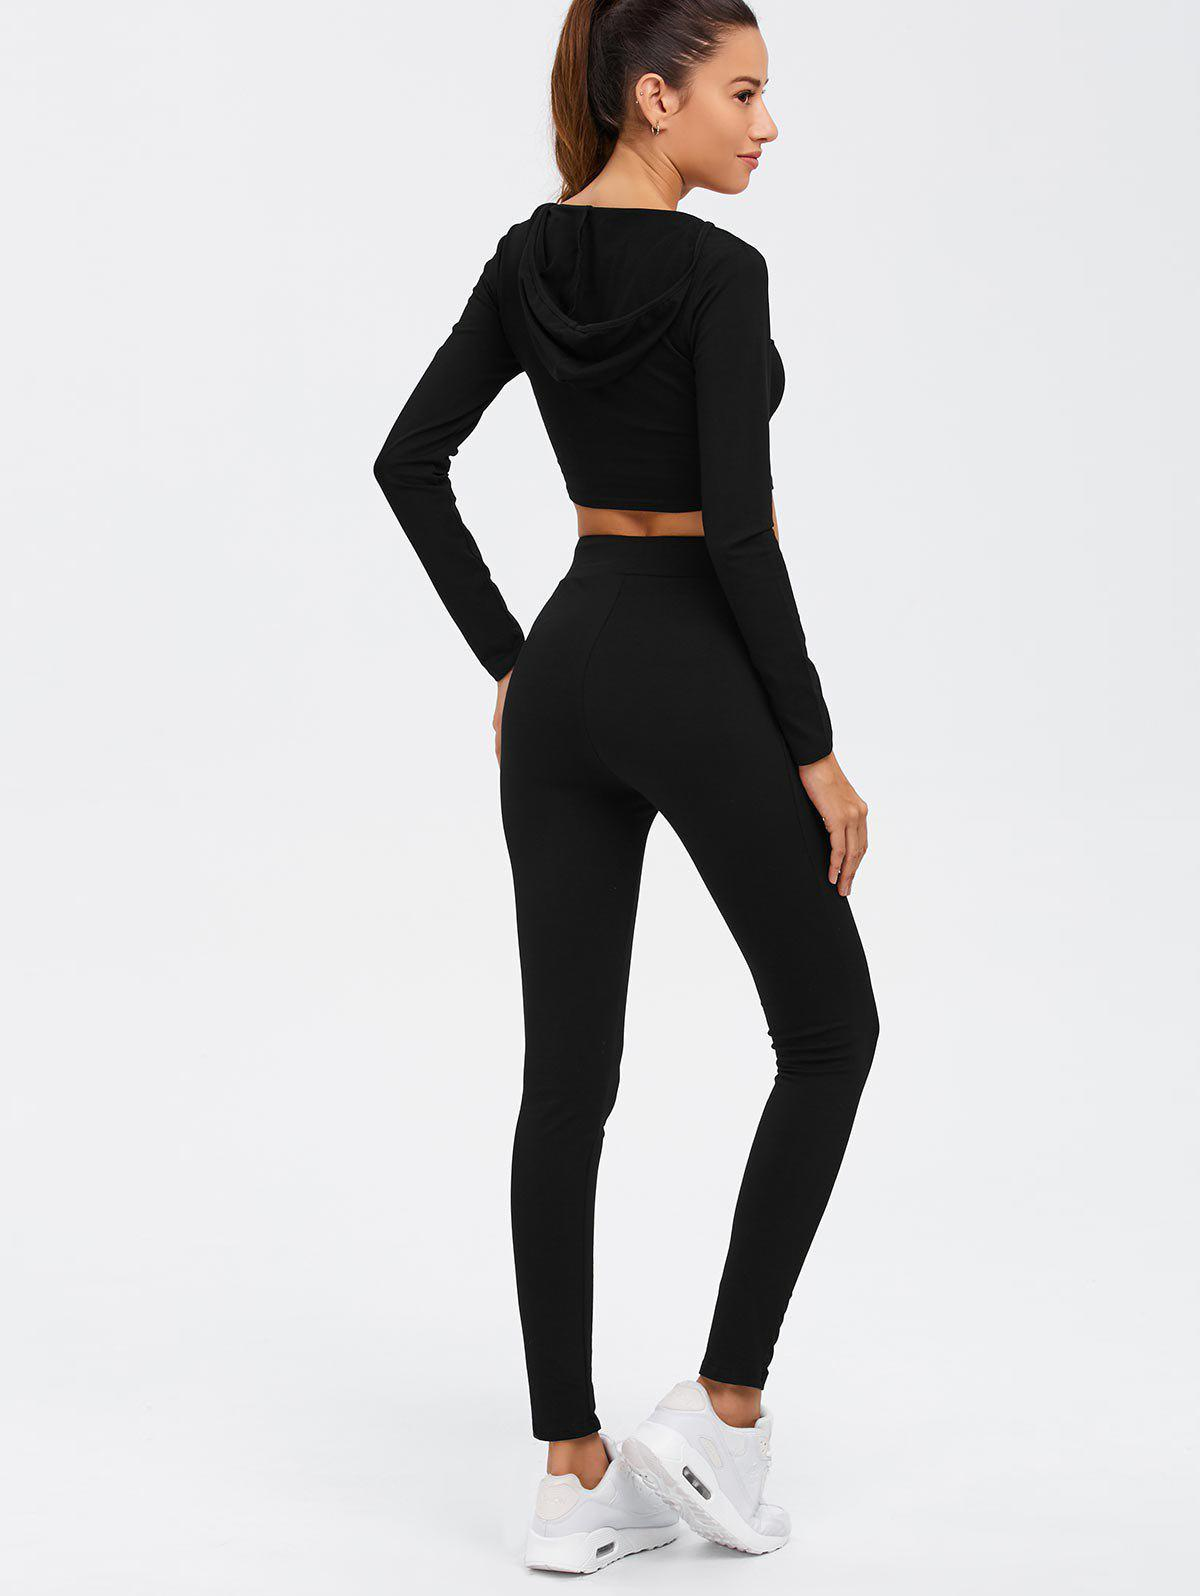 Long Sleeve Crop Top and Drawstring Pants Twinset - BLACK L